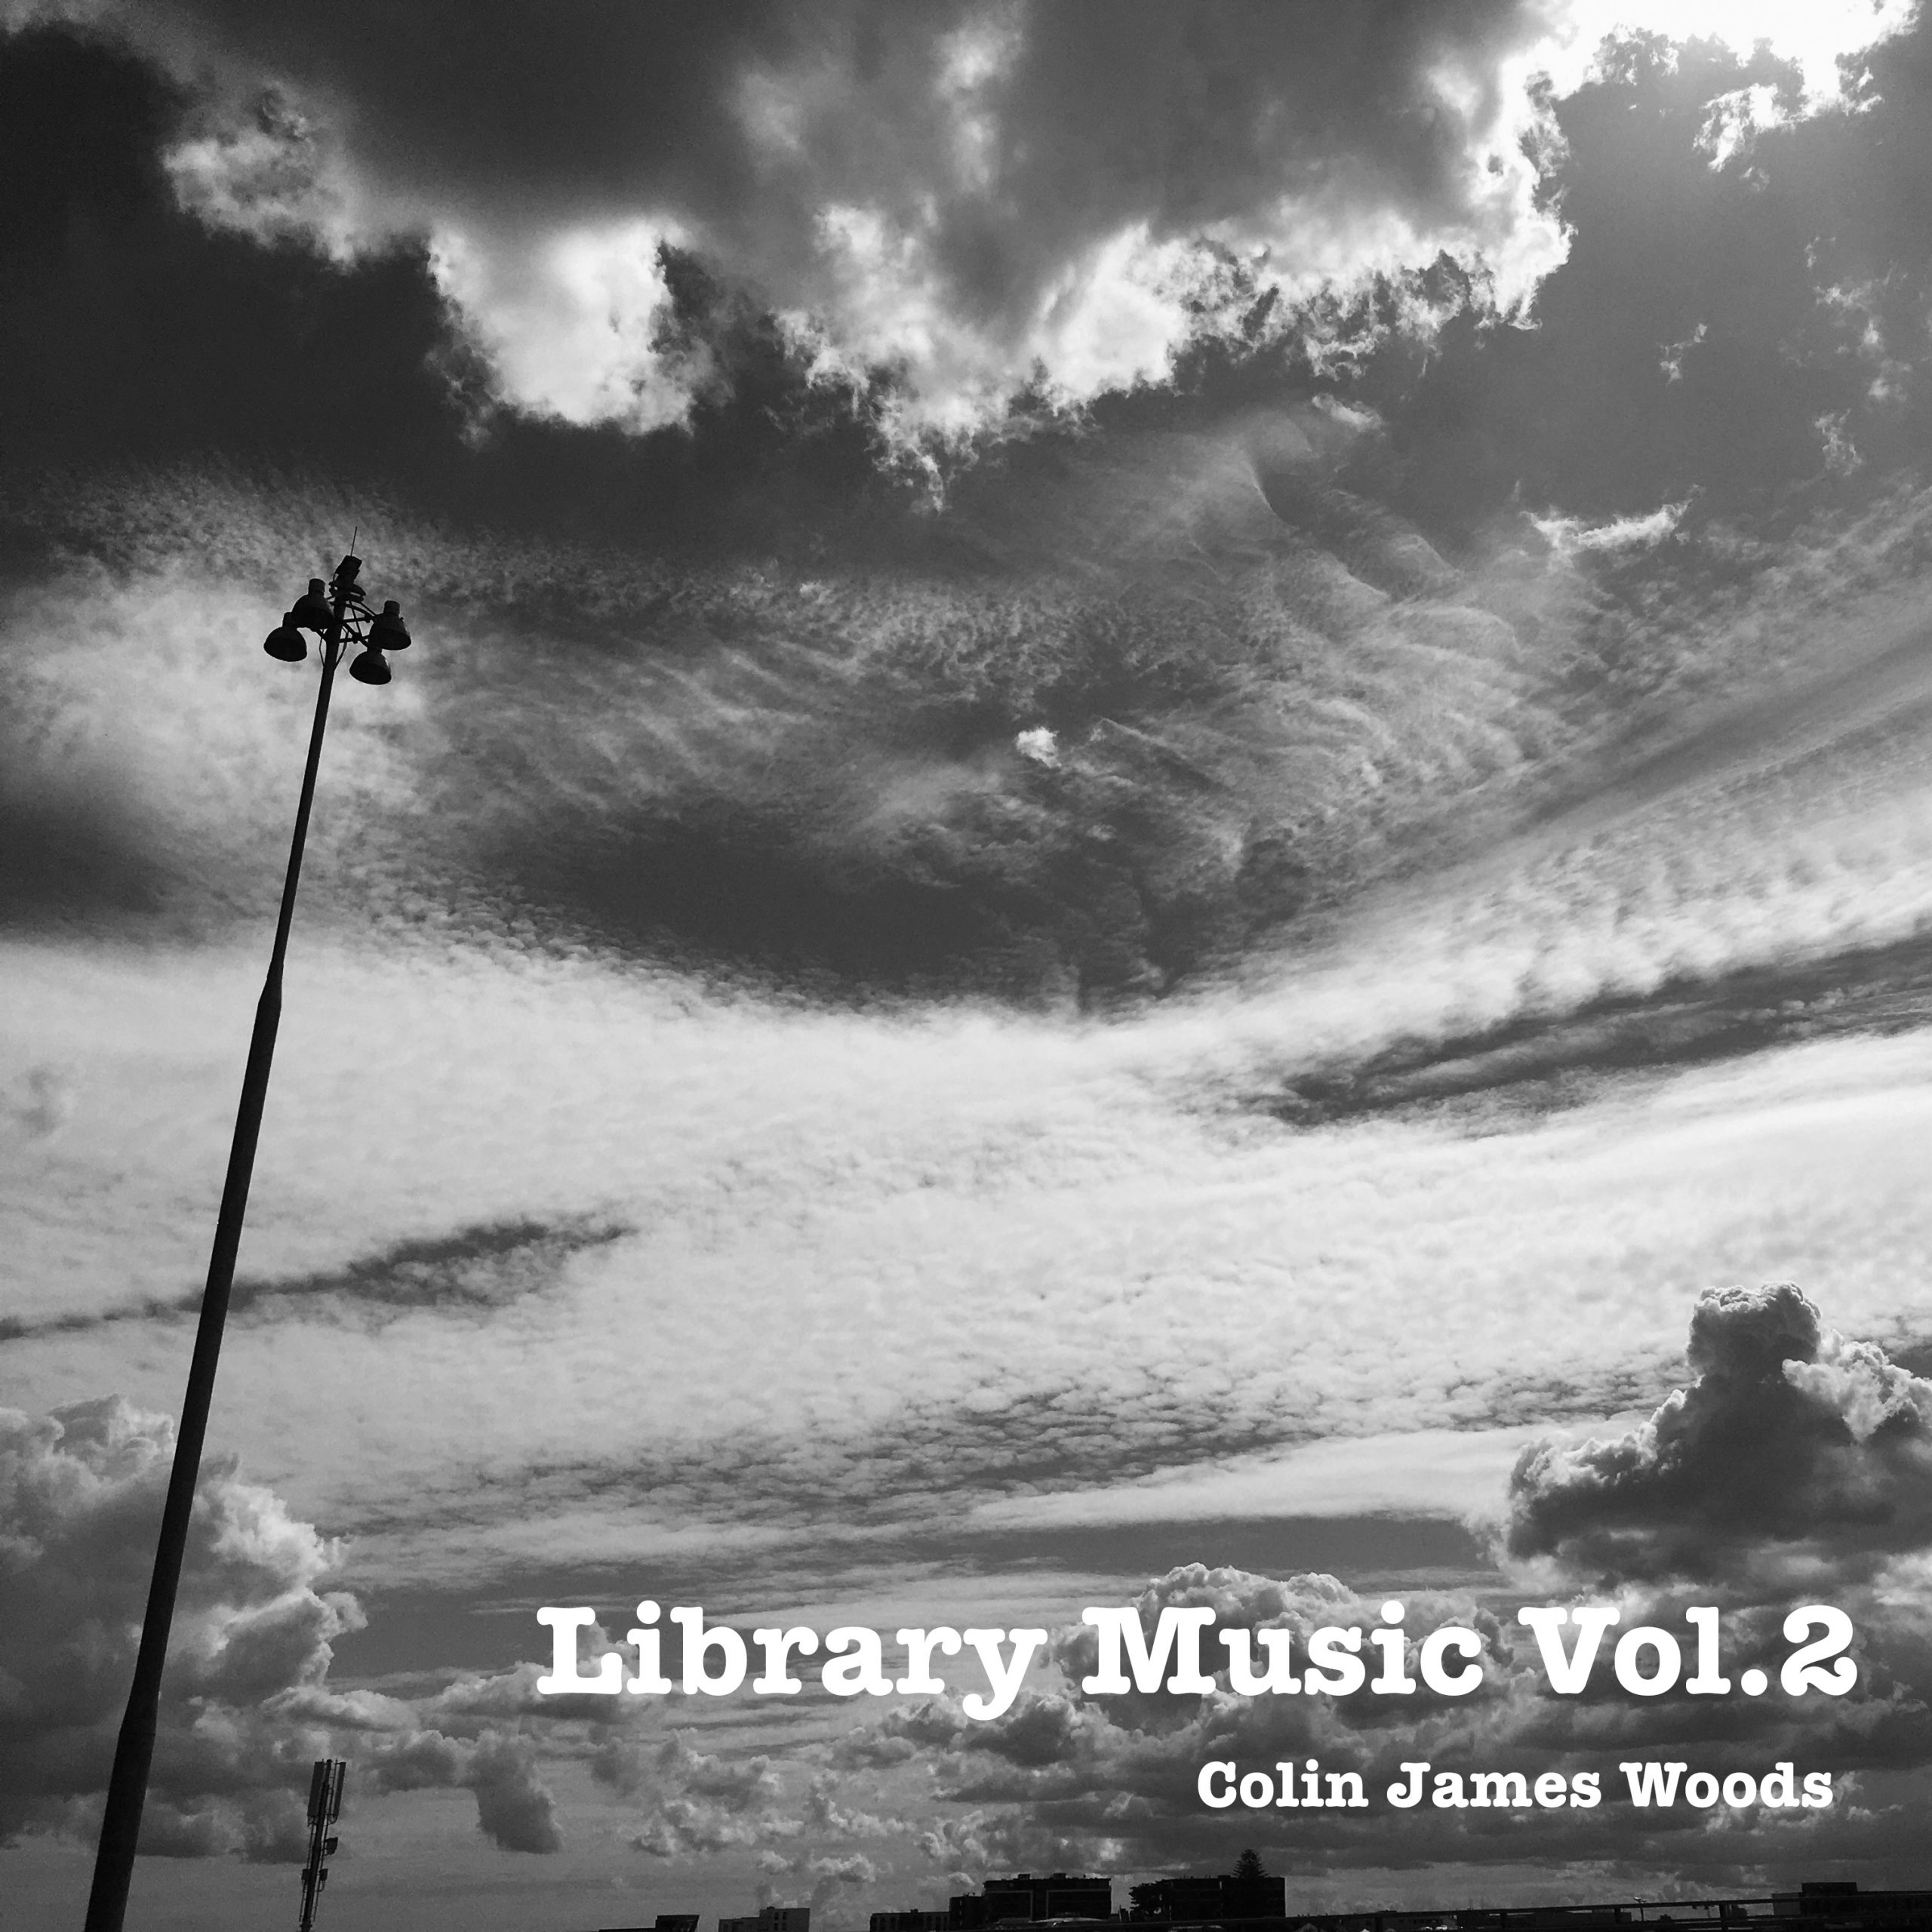 NEW RELEASE: Library Music Volume 2